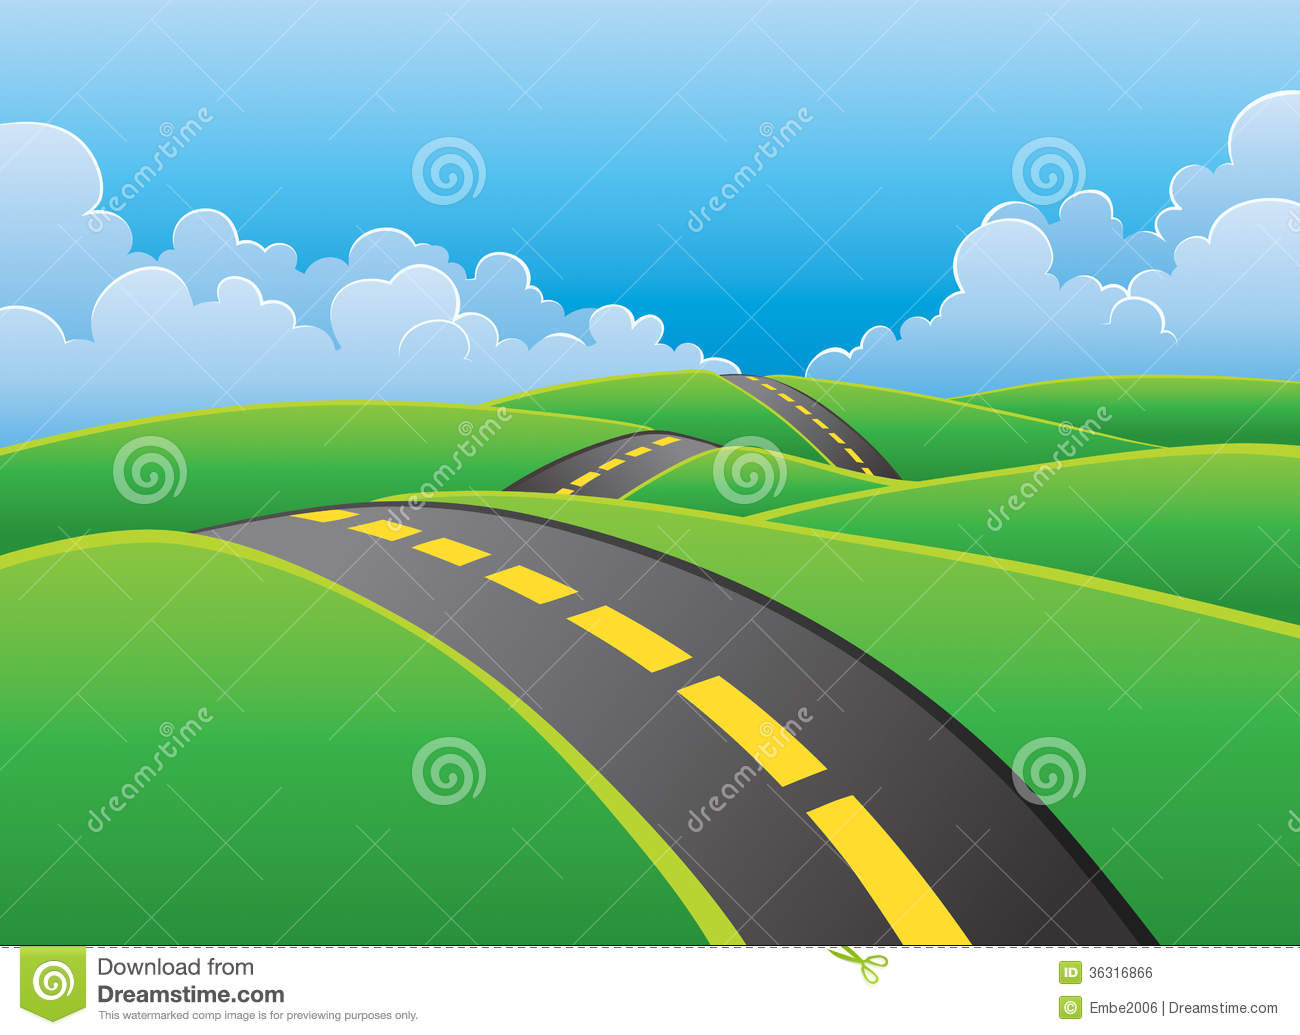 Over the hill road clipart.